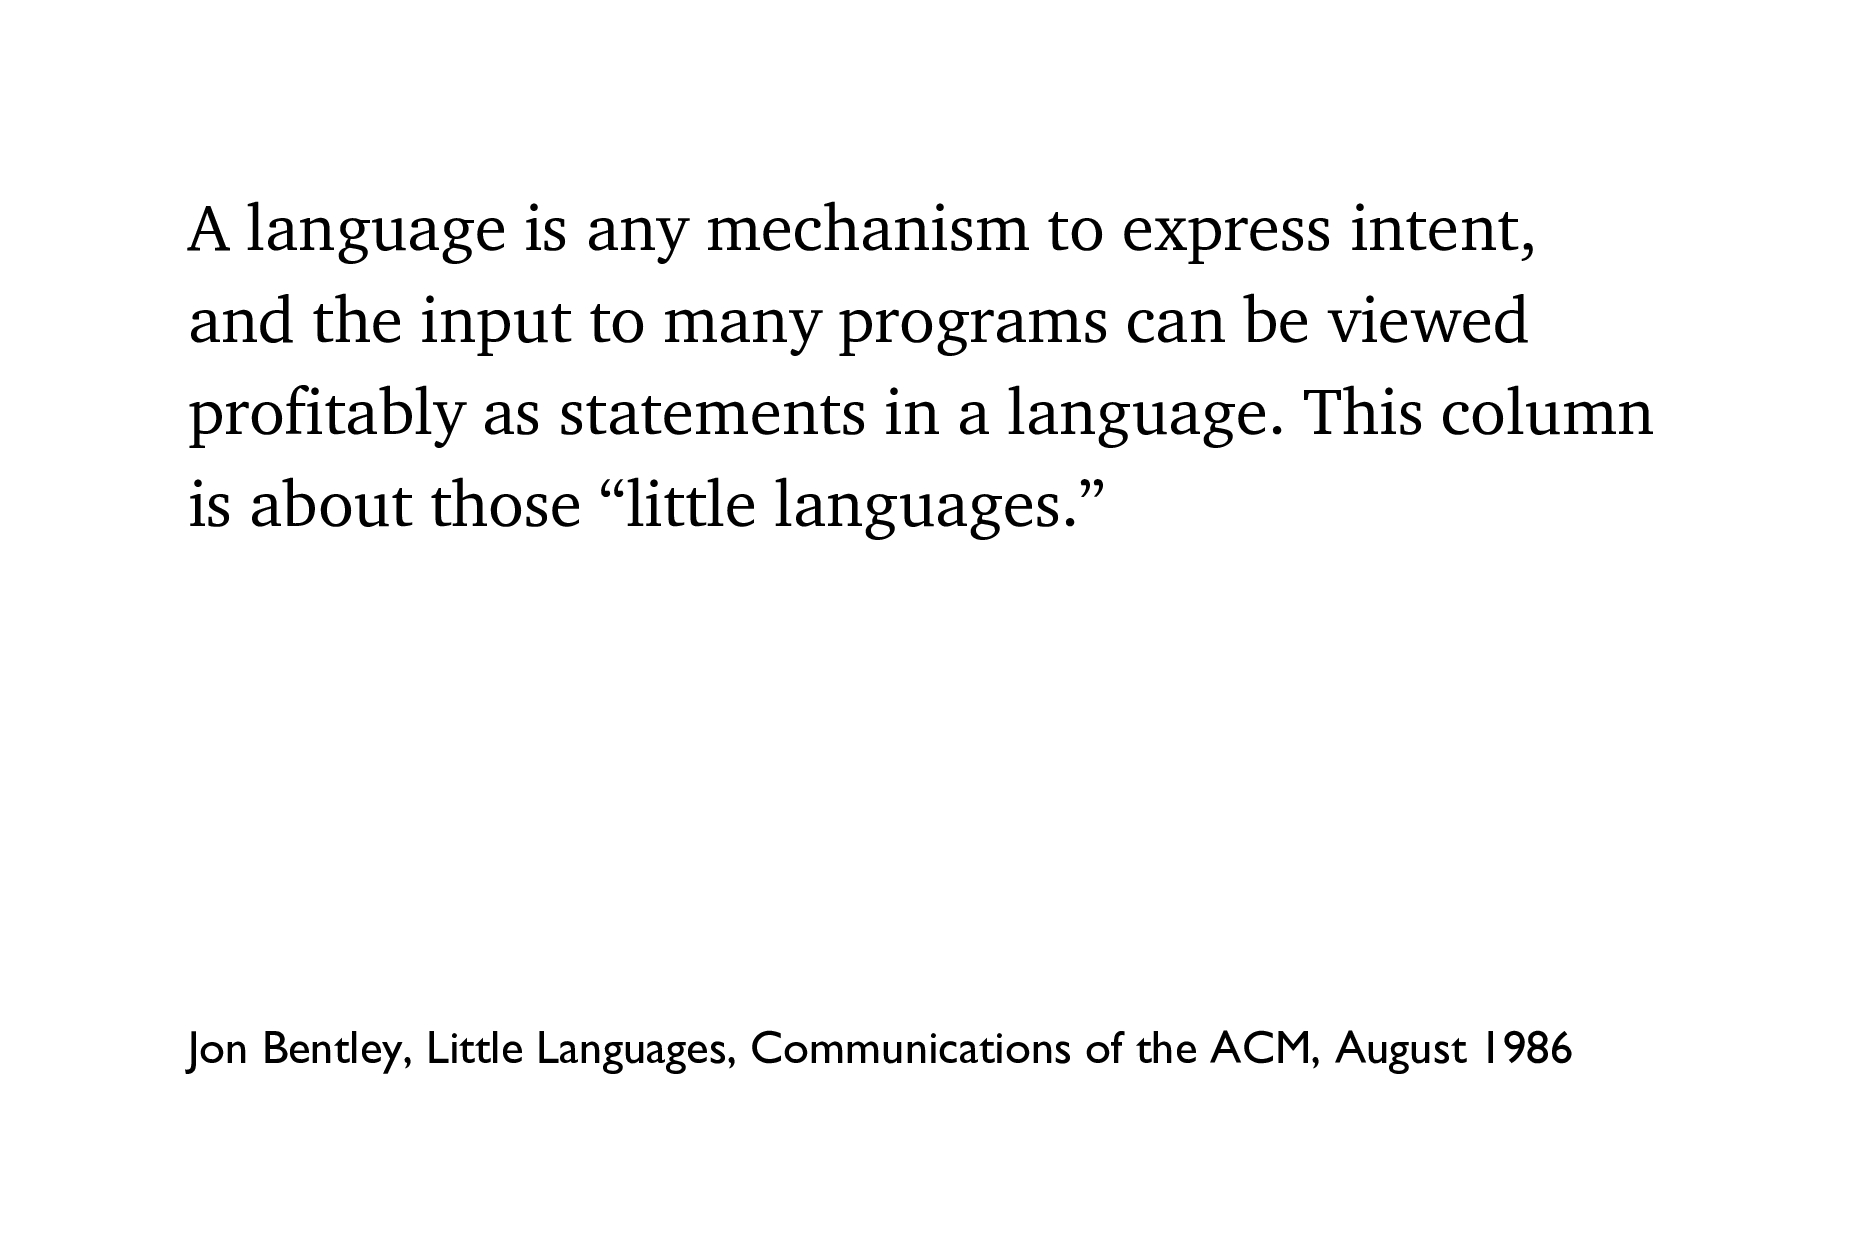 A language is any mechanism to express intent, ...